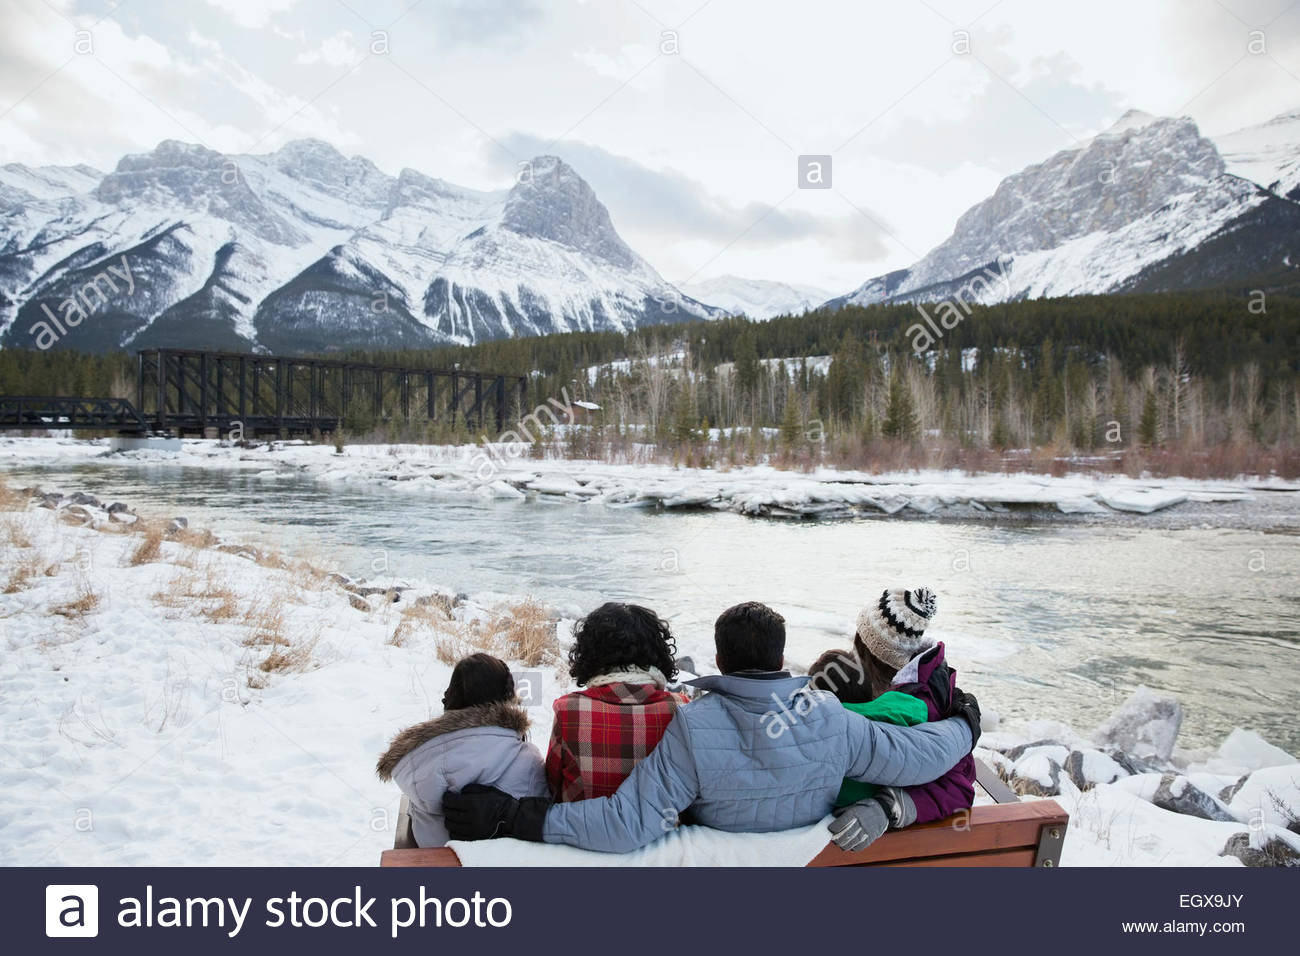 Family on bench at riverside below snowy mountains - Stock Image